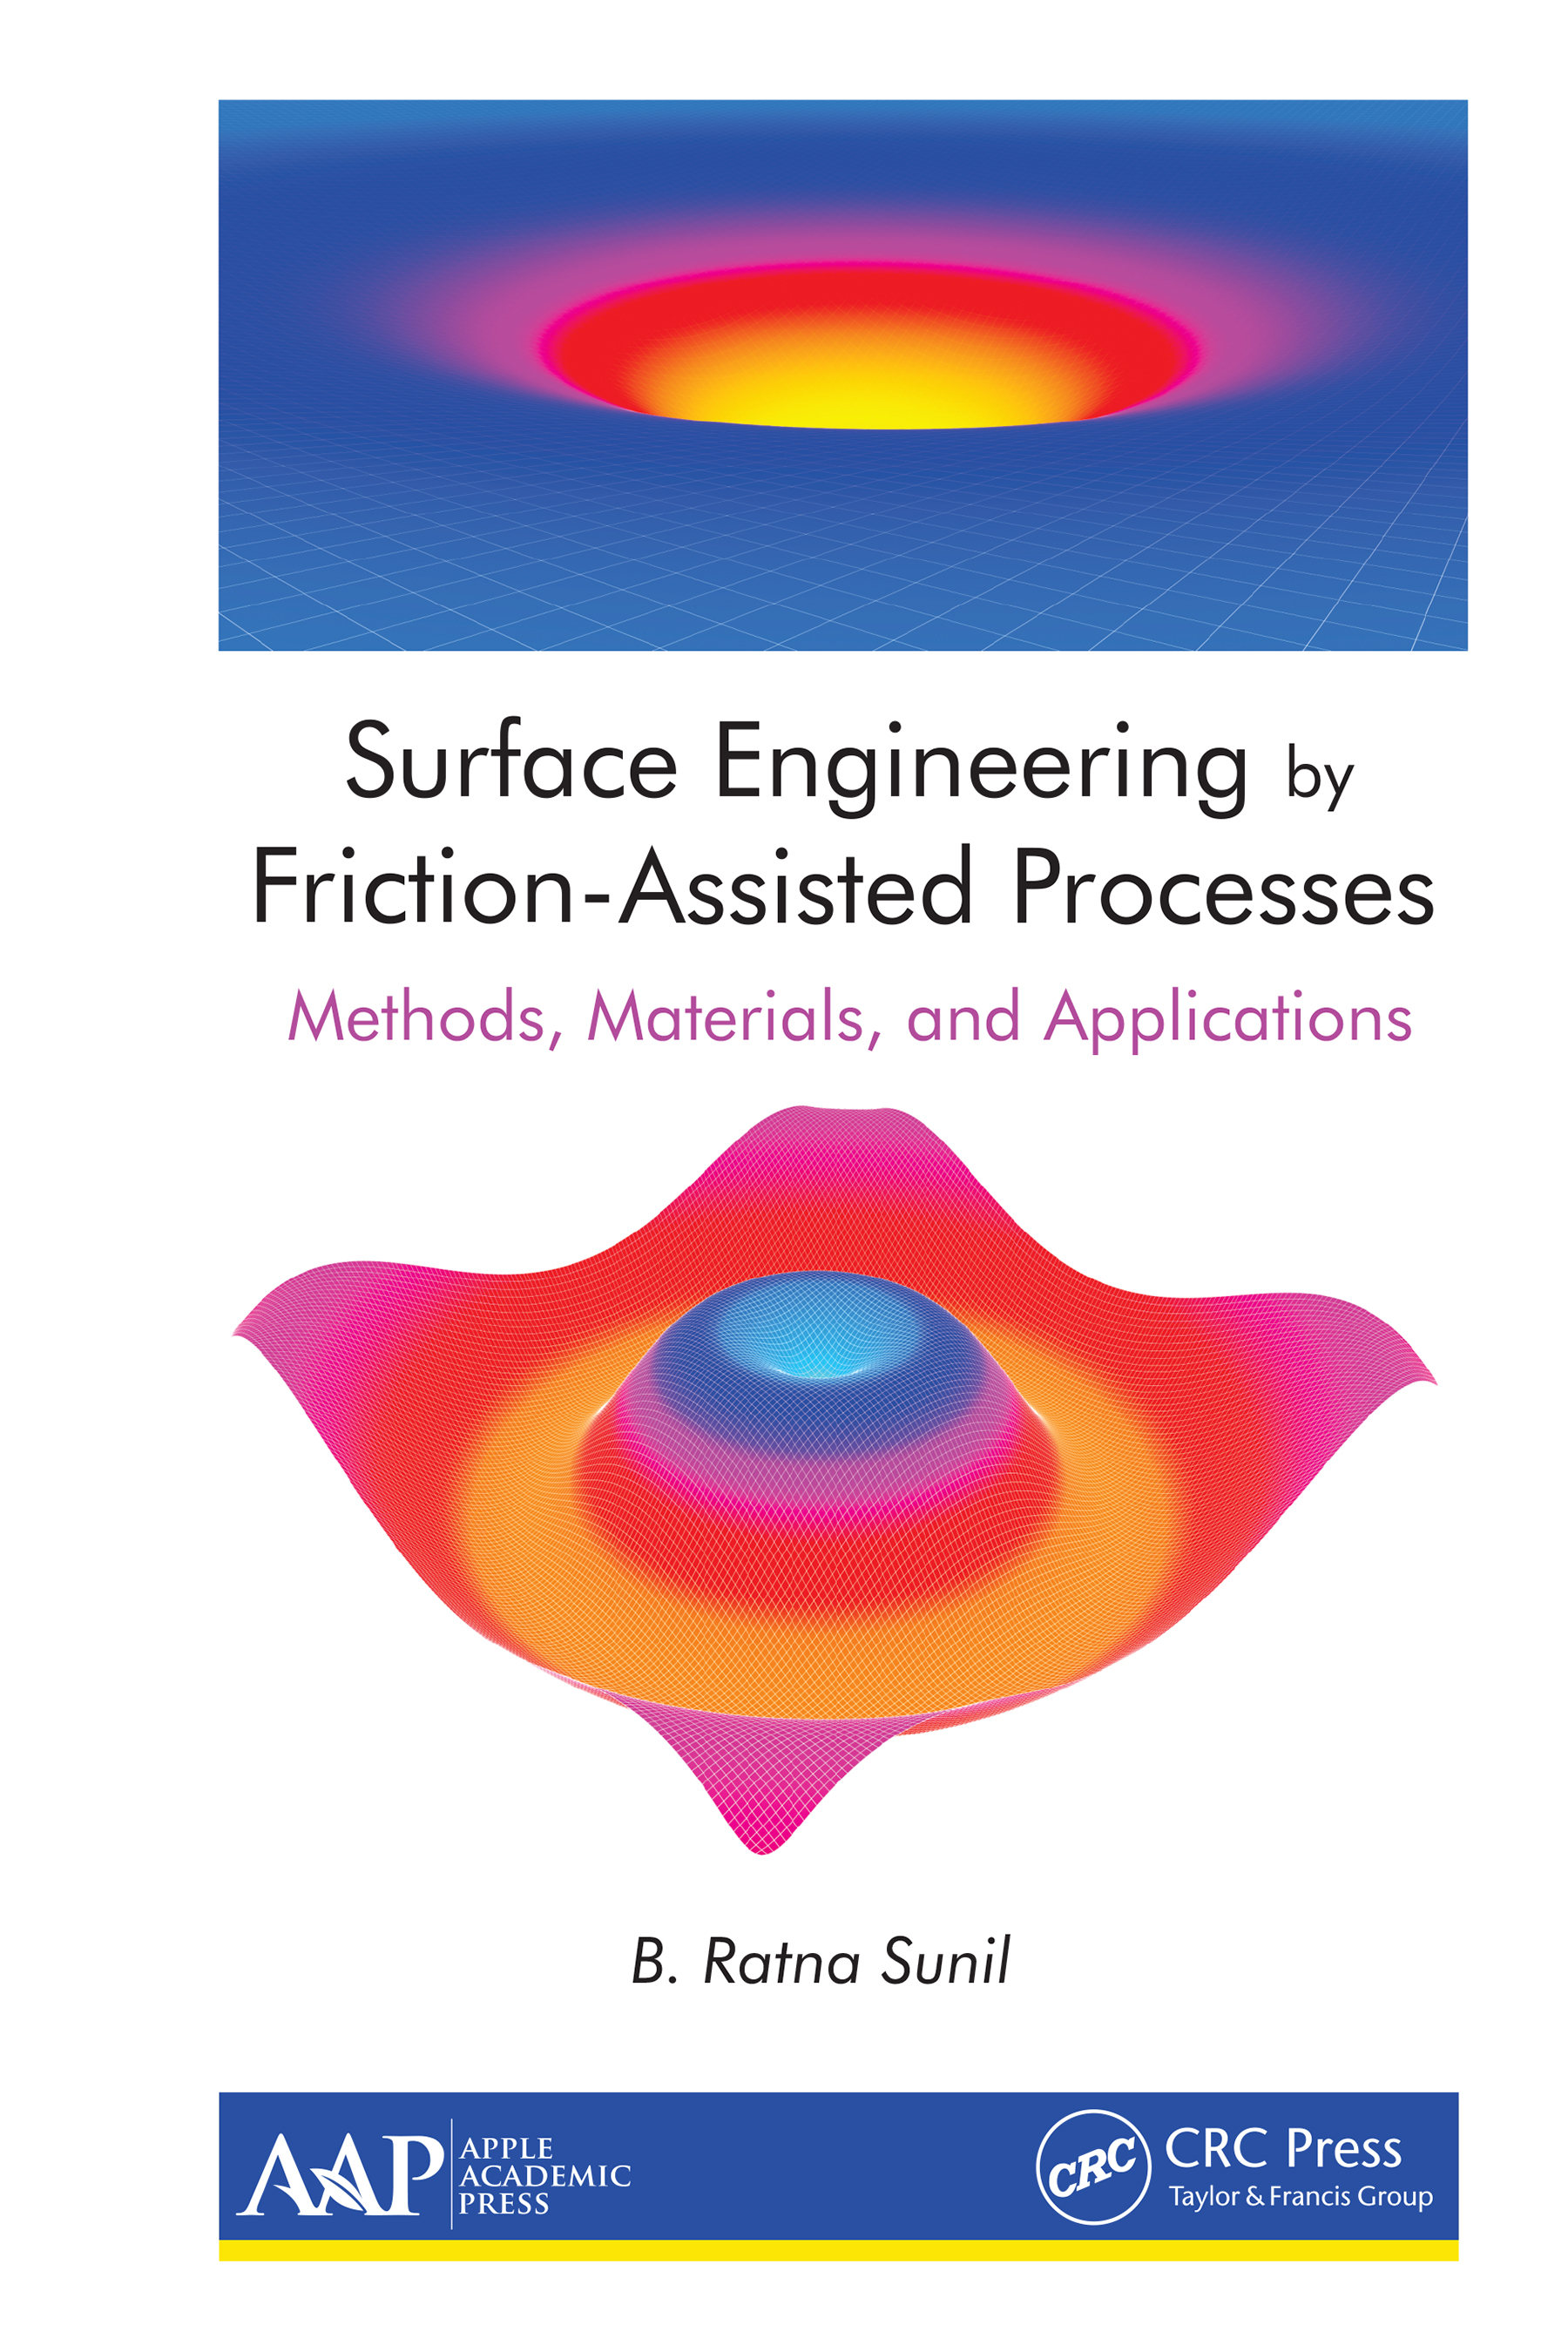 Surface Engineering by Friction-Assisted Processes: Methods, Materials, and Applications book cover